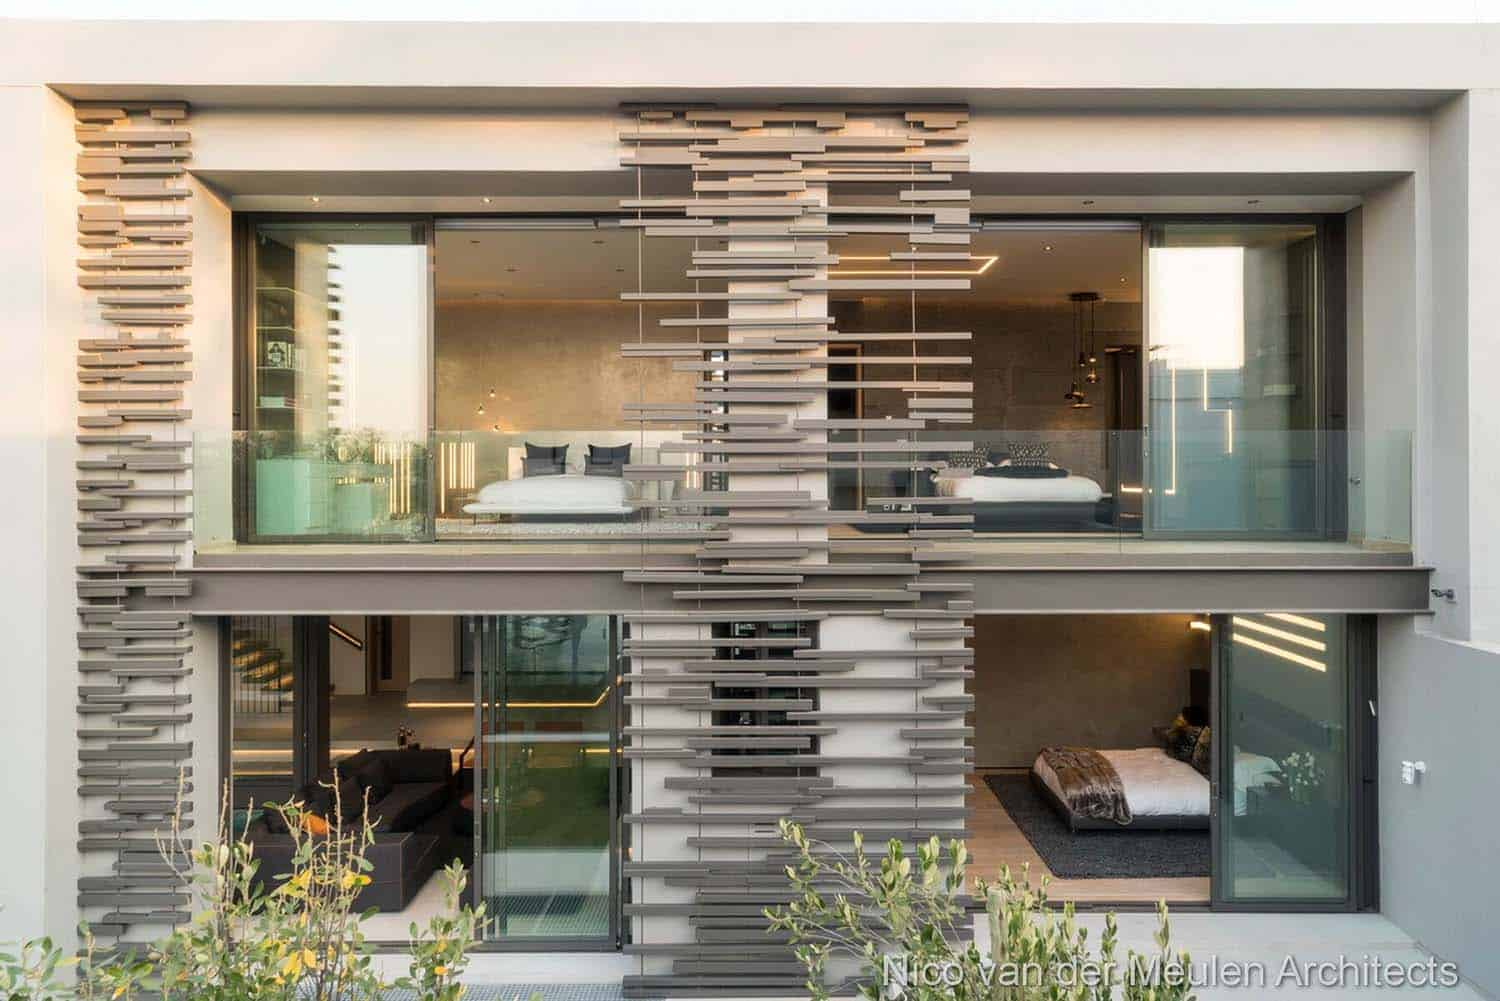 Forest Road Home-Nico van der Meulen Architects-06-1 Kindesign